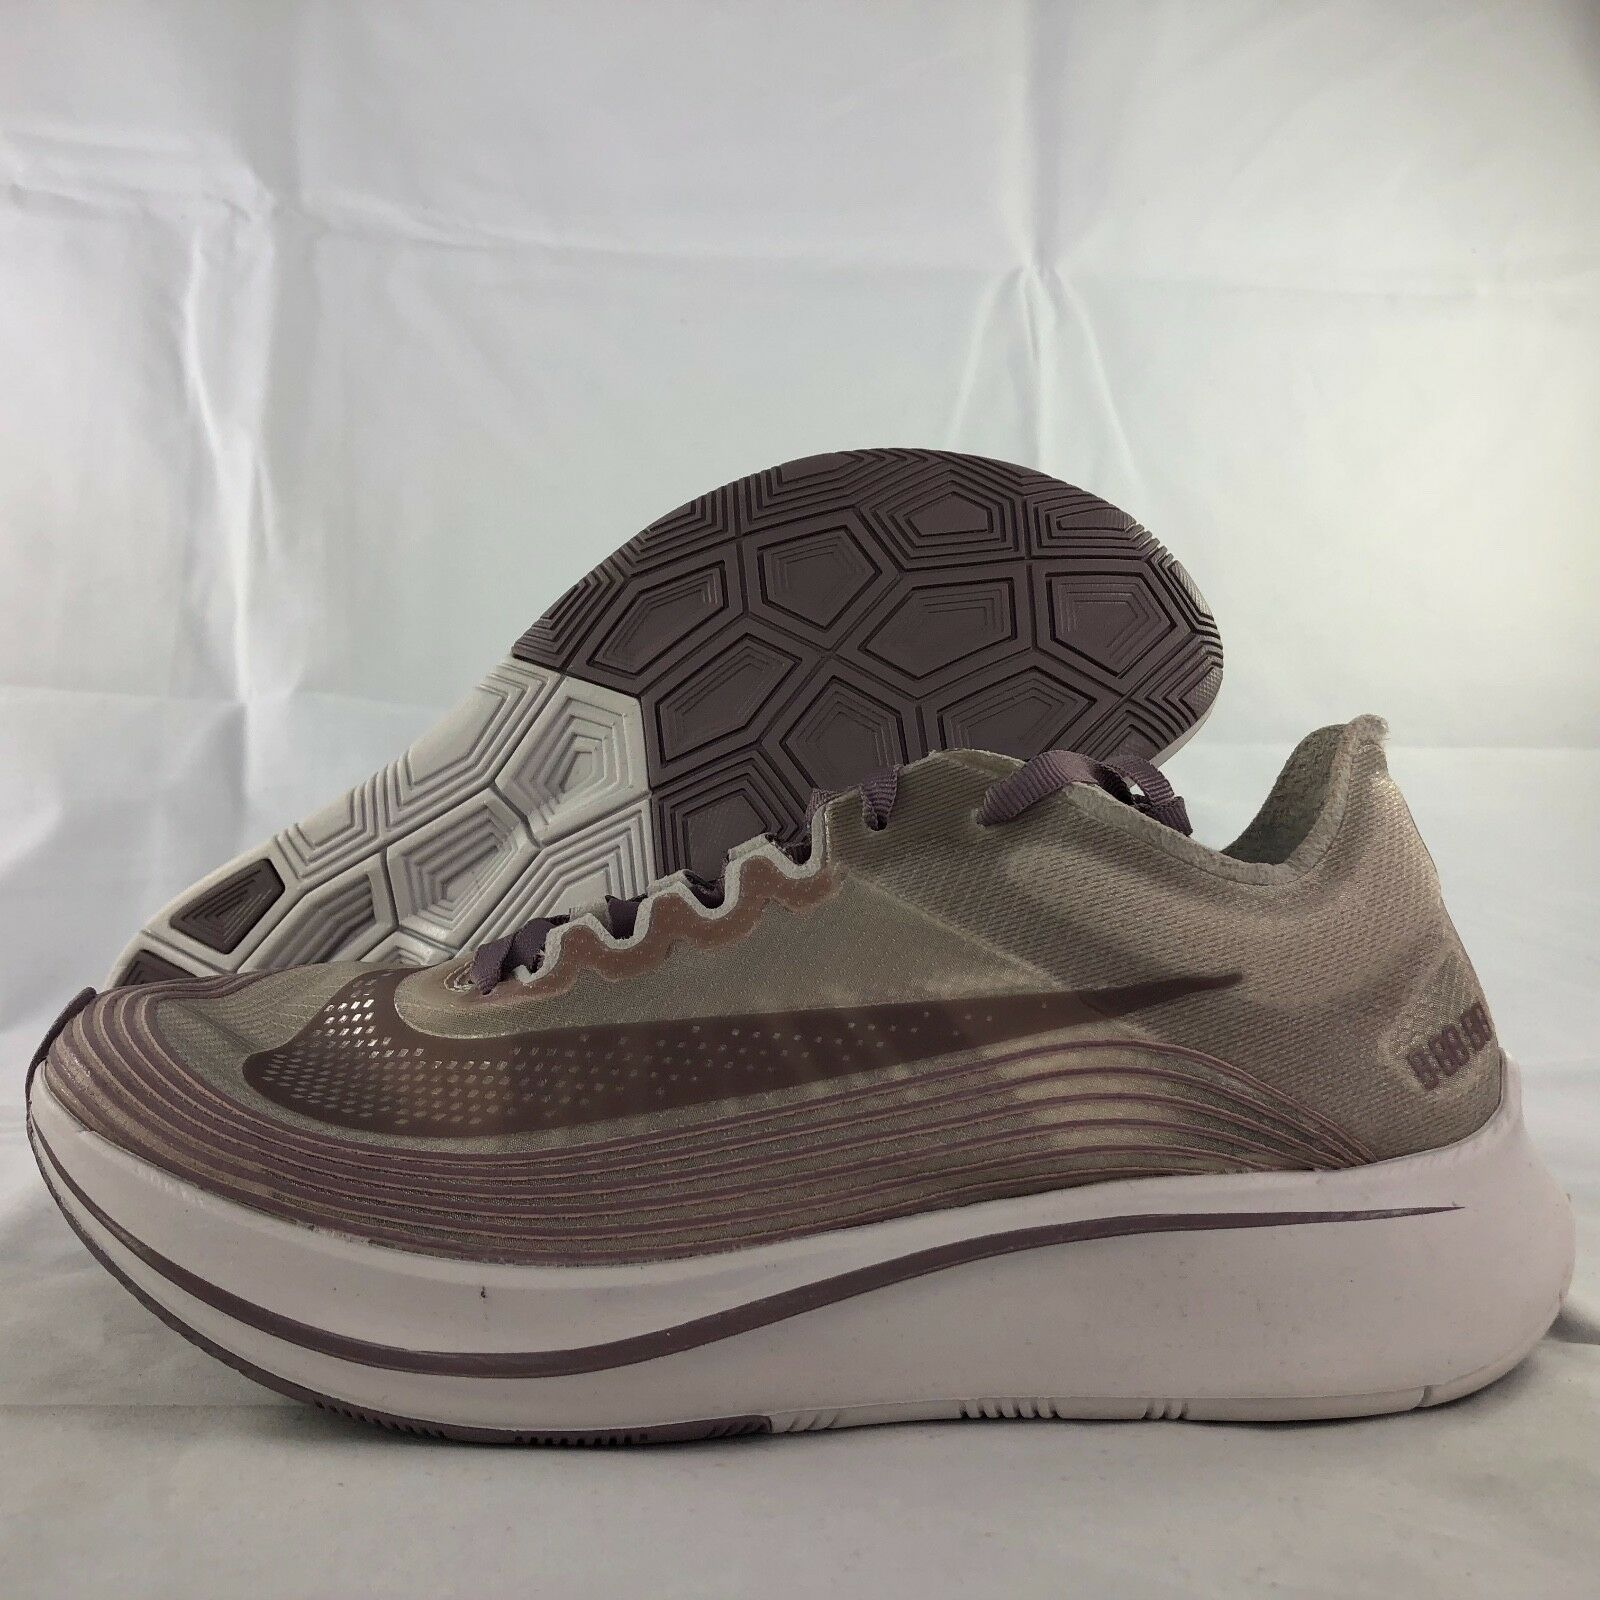 Nike Obsidian NikeLab Zoom Fly SP Chicago Taupe Grey Obsidian Nike AA3172-200 Men's 4-10 NEW 4cd3f7